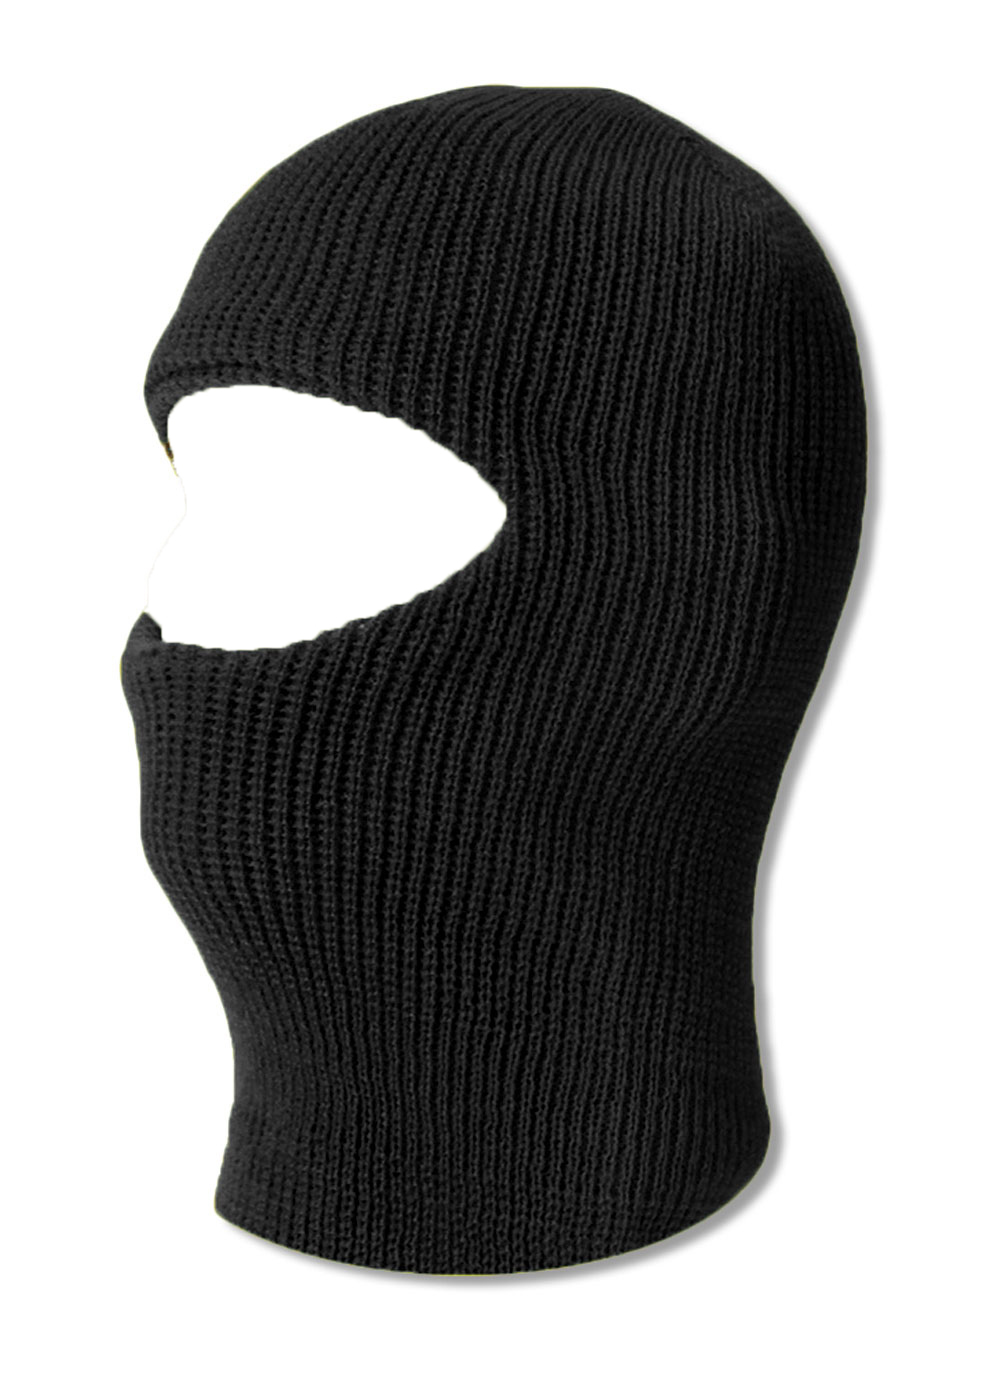 TopHeadwear One 1 Hole Ski Mask Black by